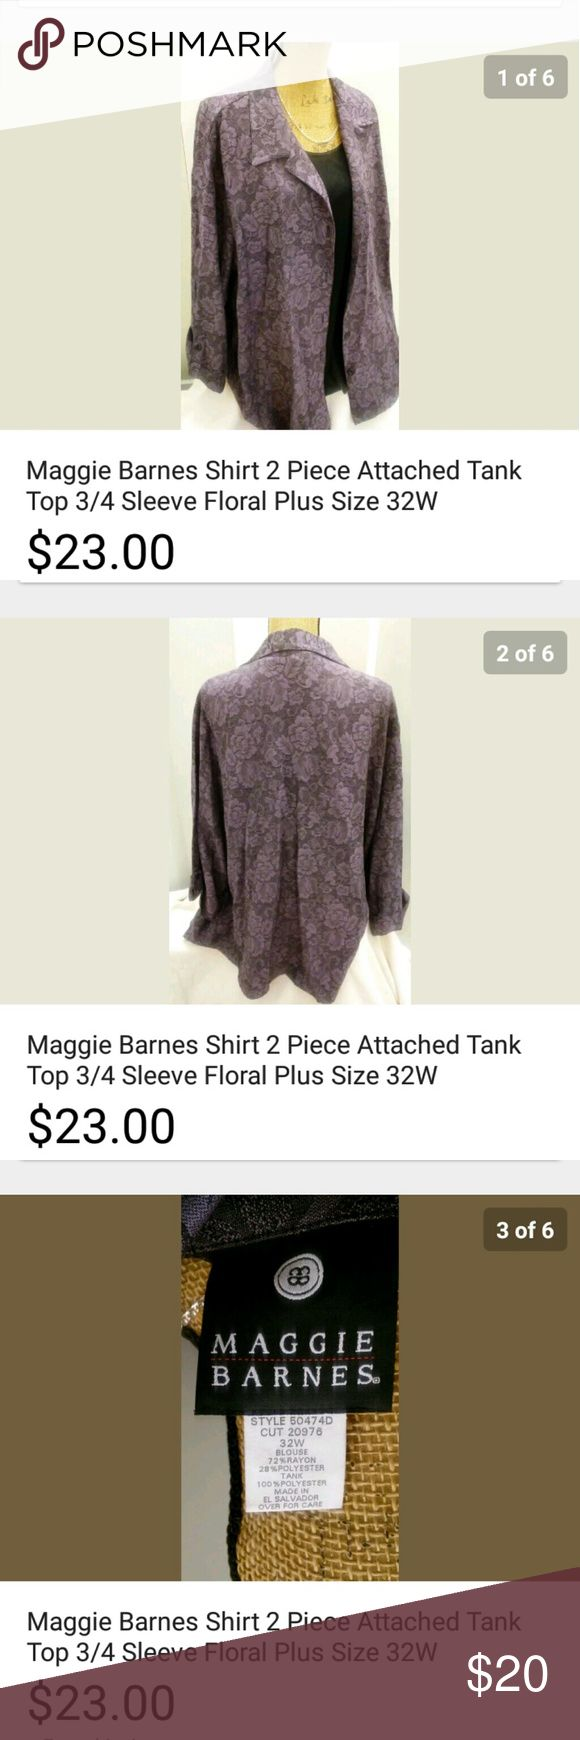 """Maggie Barnes One Piece Shirt Blazer Plus 32W Maggie Barnes? Purple One piece? Floral? Shirt blazer attached? Button closures? 3/4 sleeve? Floral? Vented cuffs? Plus Size 32W? From smoke FREE pet FREE HOME?  Approx. Measurements: taken laying flat?  Armpit to armpit ~ 32?? Sleeves ~ 3/4""""? Length ~ 32??  Material~72% Rayon 28%polyester? Maggie Barnes Jackets & Coats Blazers"""